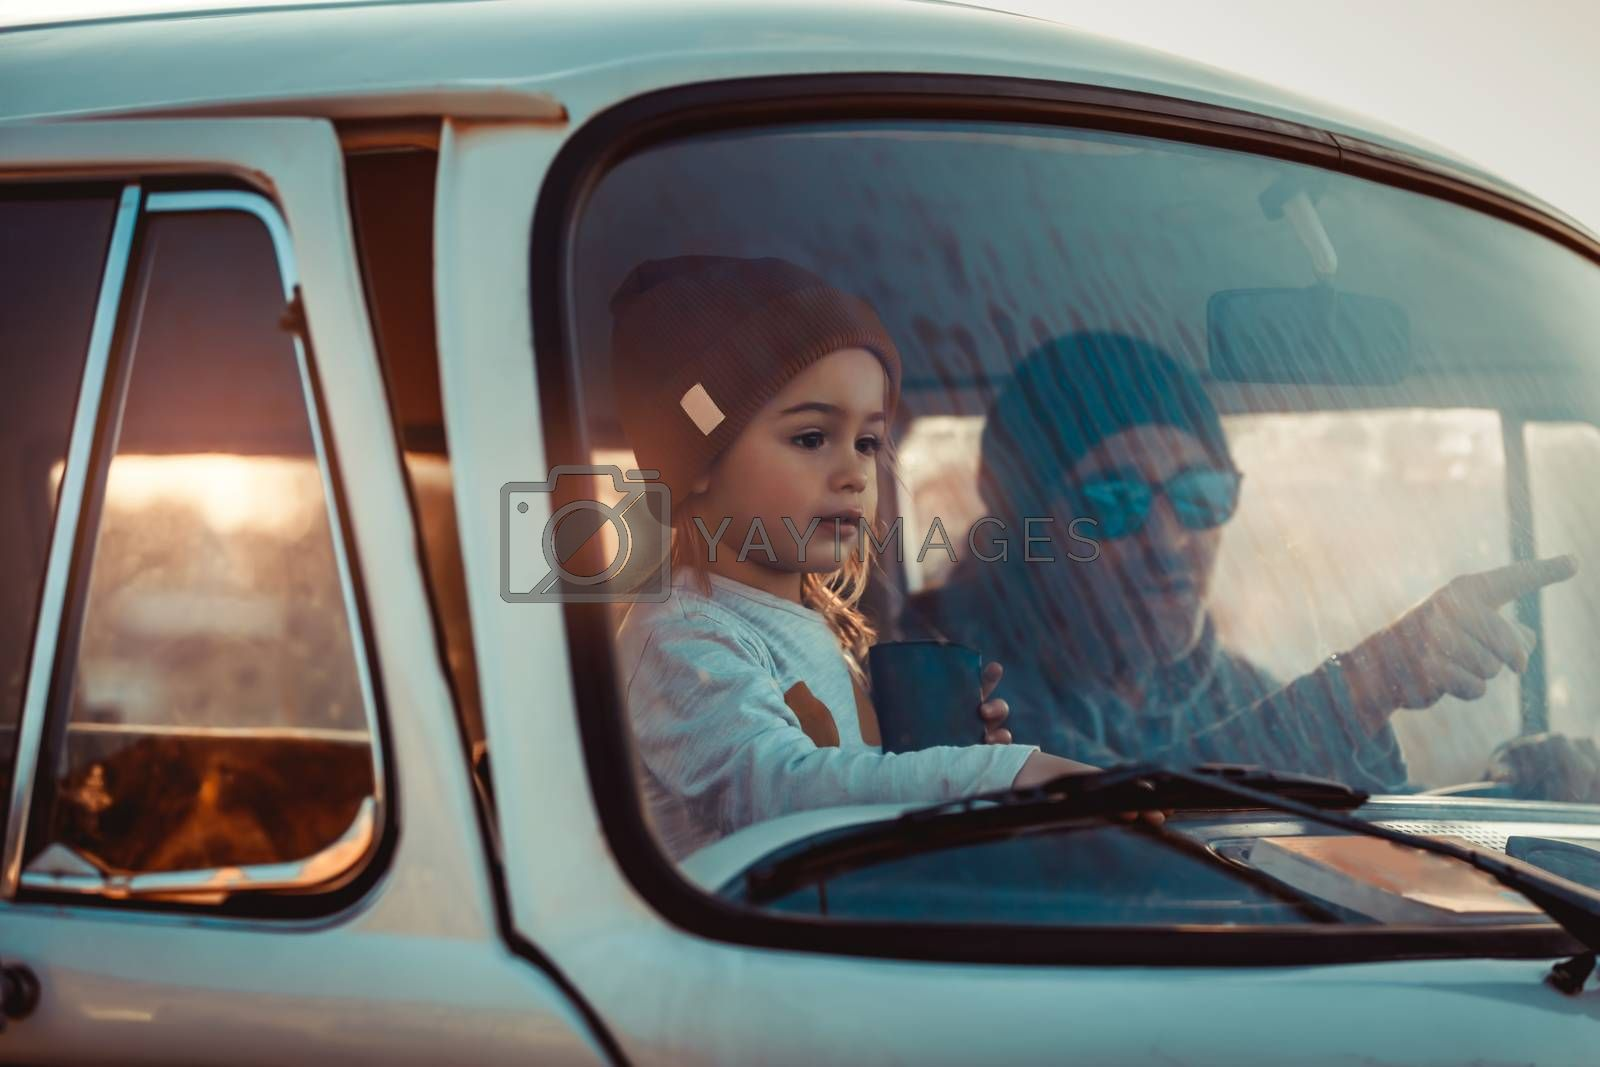 Father with his Little Baby Boy in the Car. Enjoying Road Trip Adventures. Active People. With Pleasure Spending Time Together. Happy Family Life.